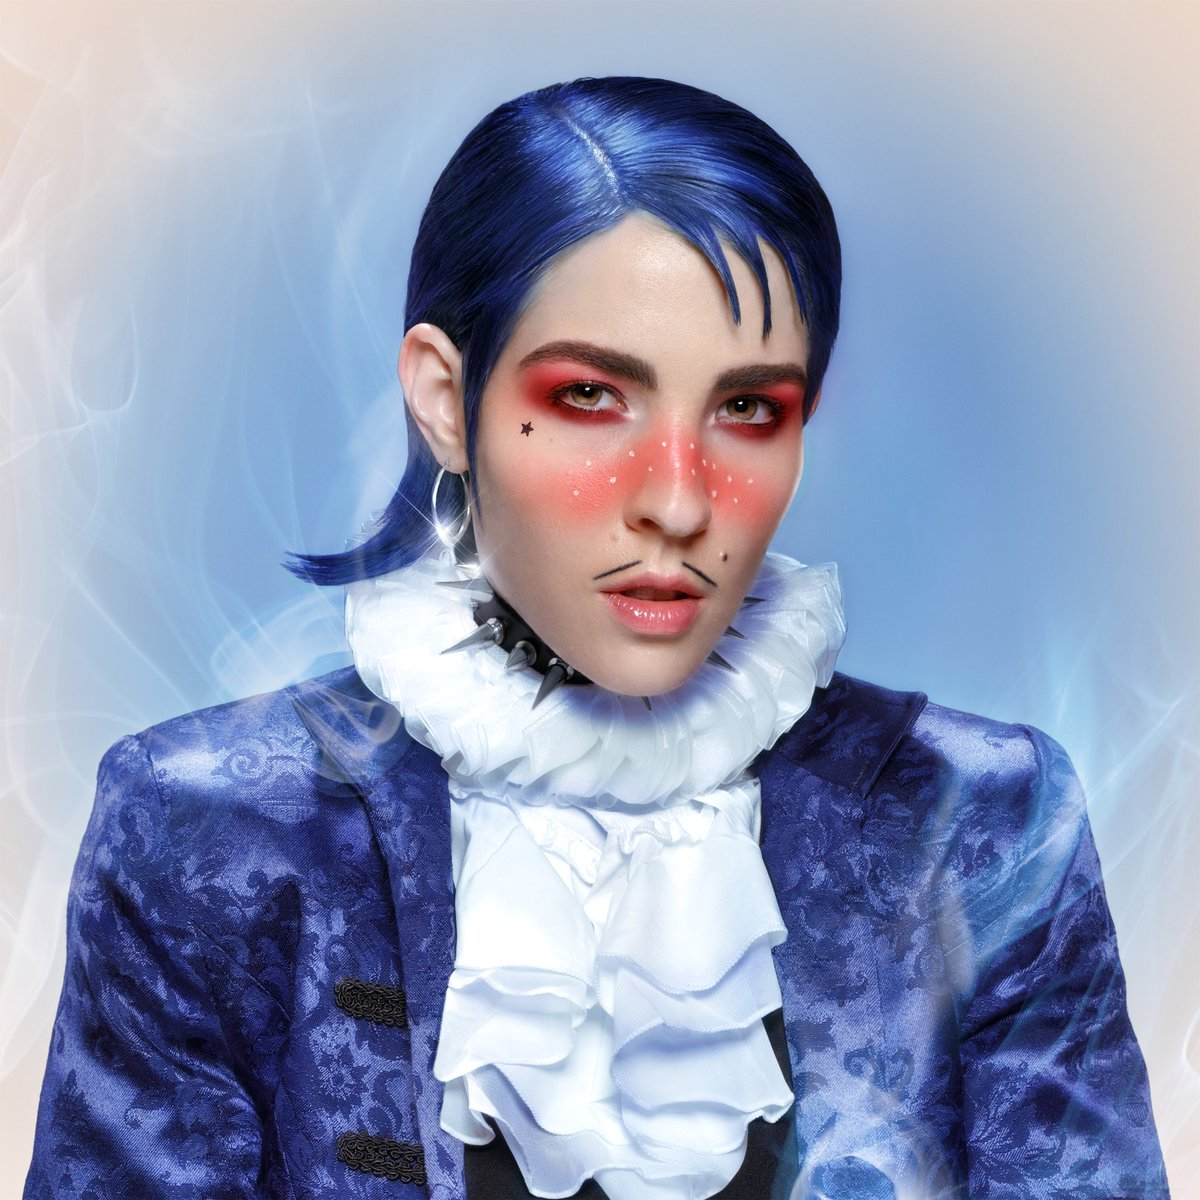 Image result for Flamboyant - Dorian Electra